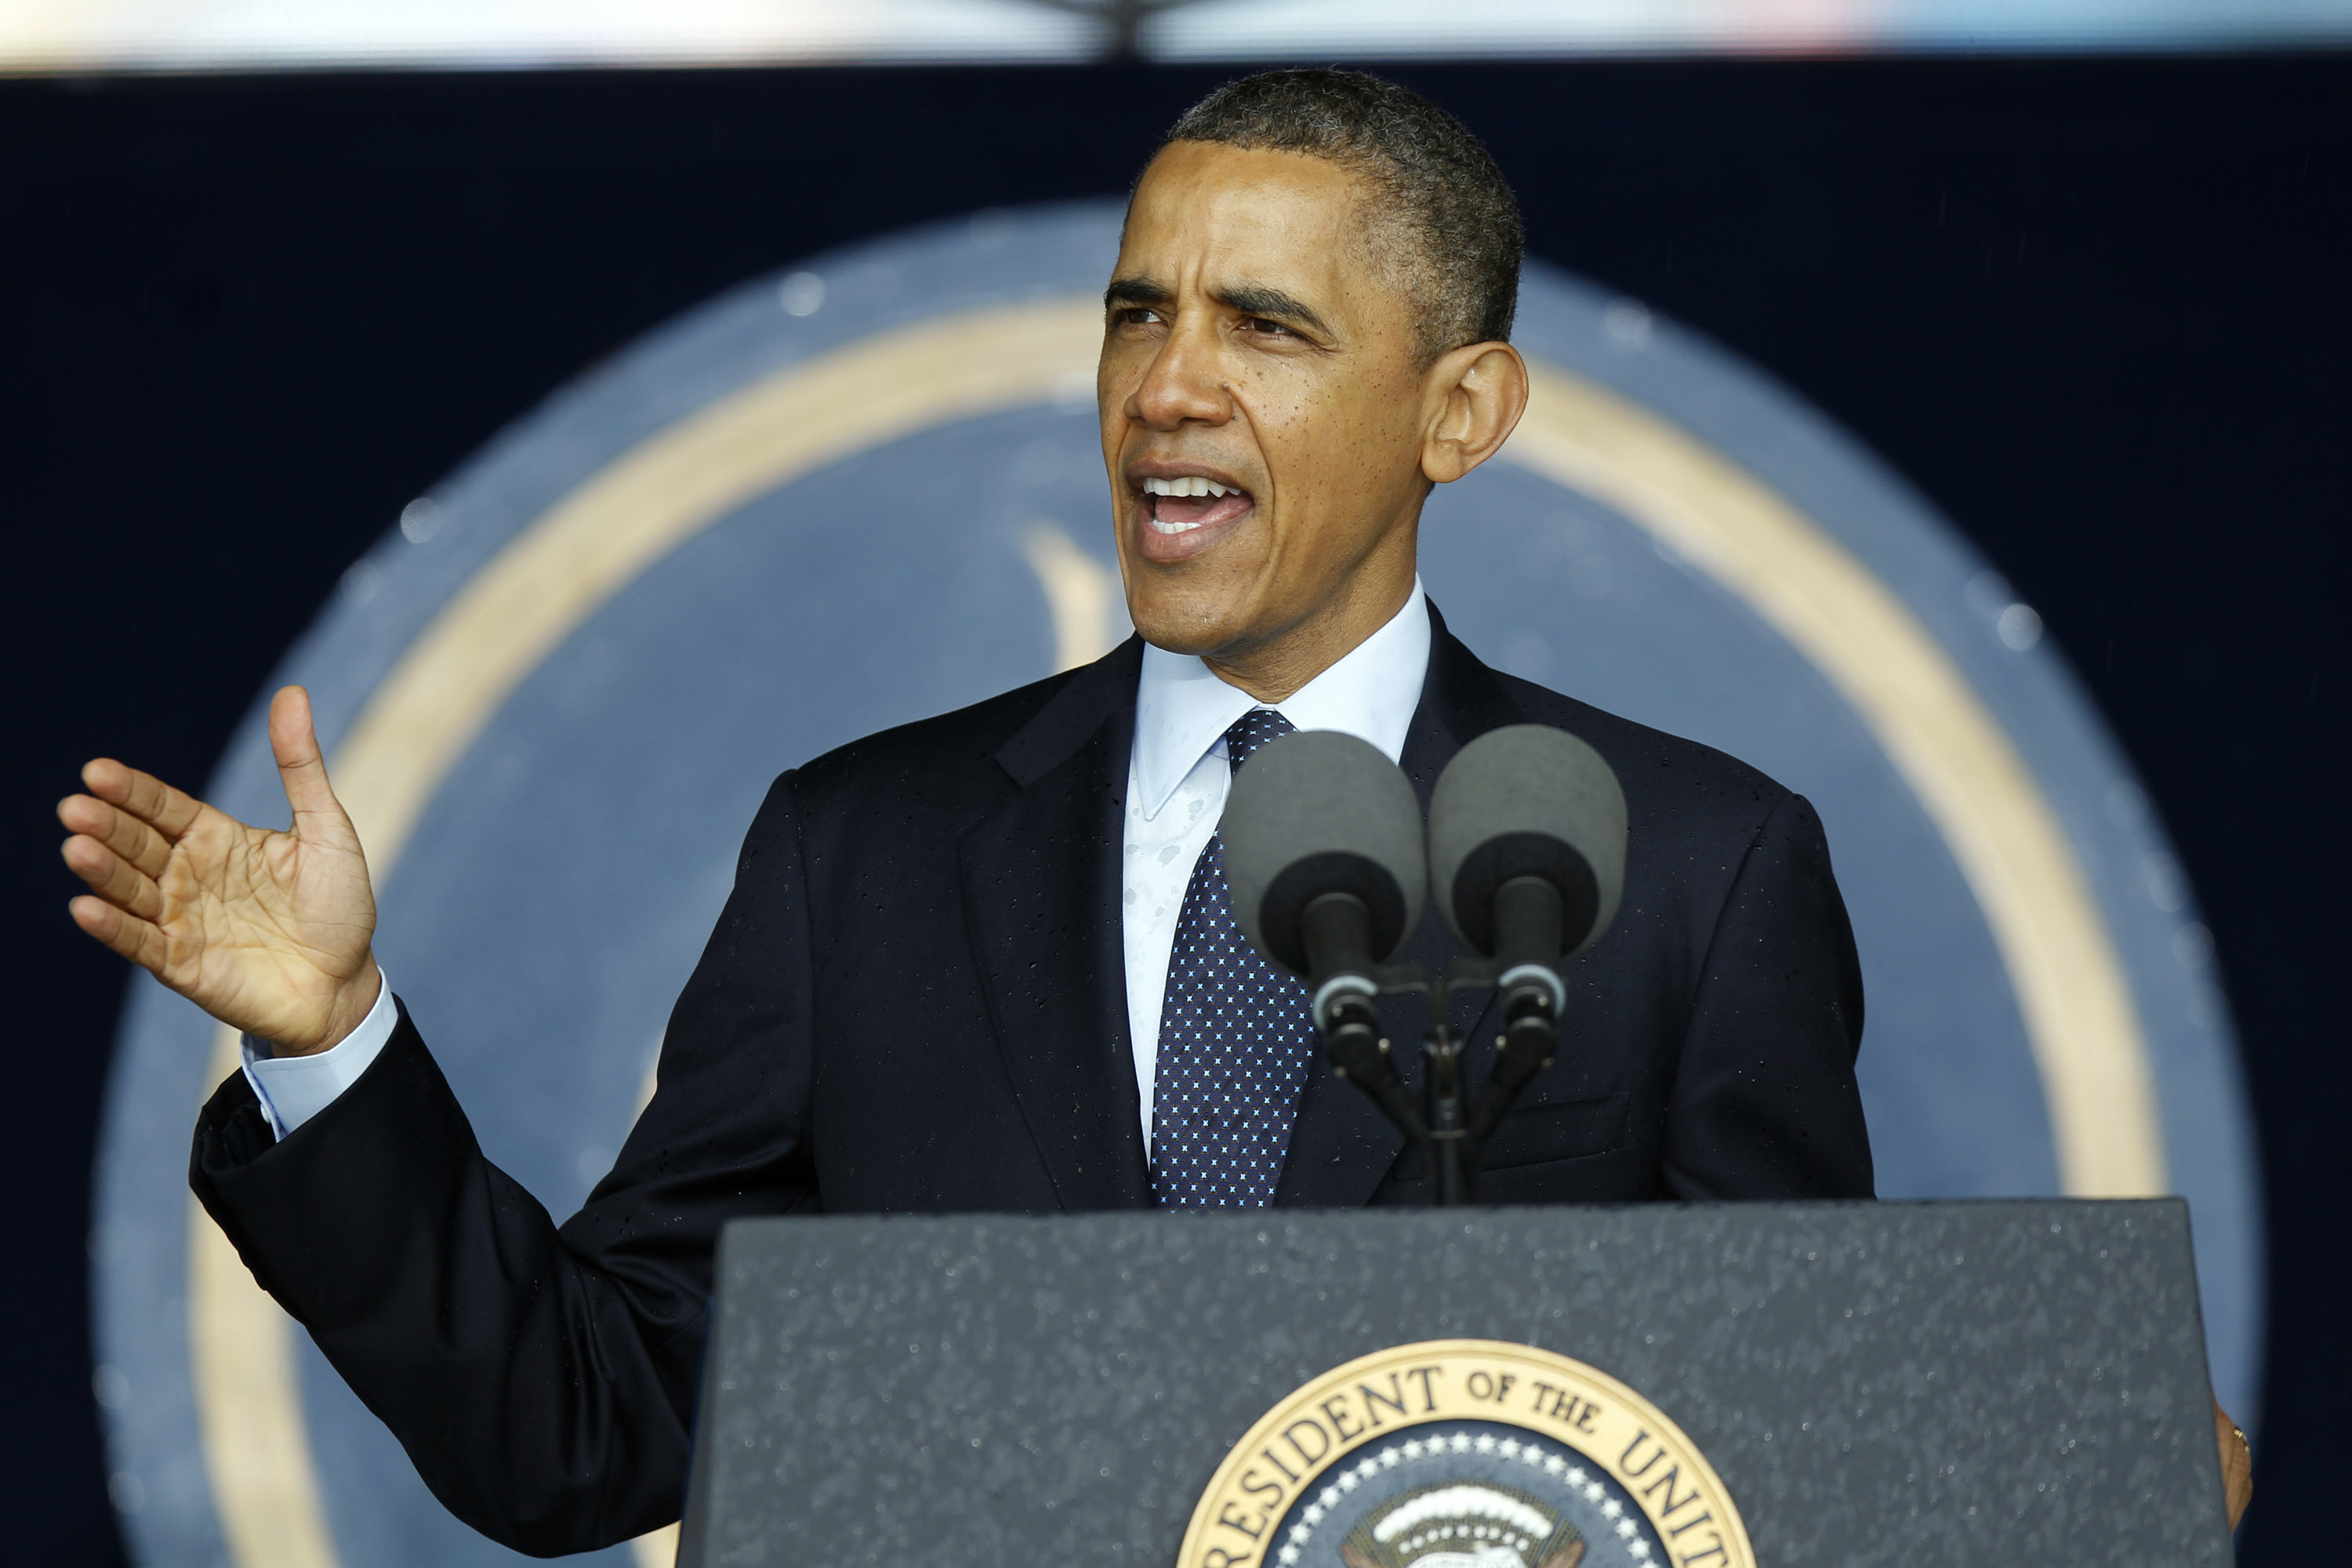 President Barack Obama speaks during the U.S. Naval Academy Graduation on May 24, 2013 in Annapolis, Maryland.